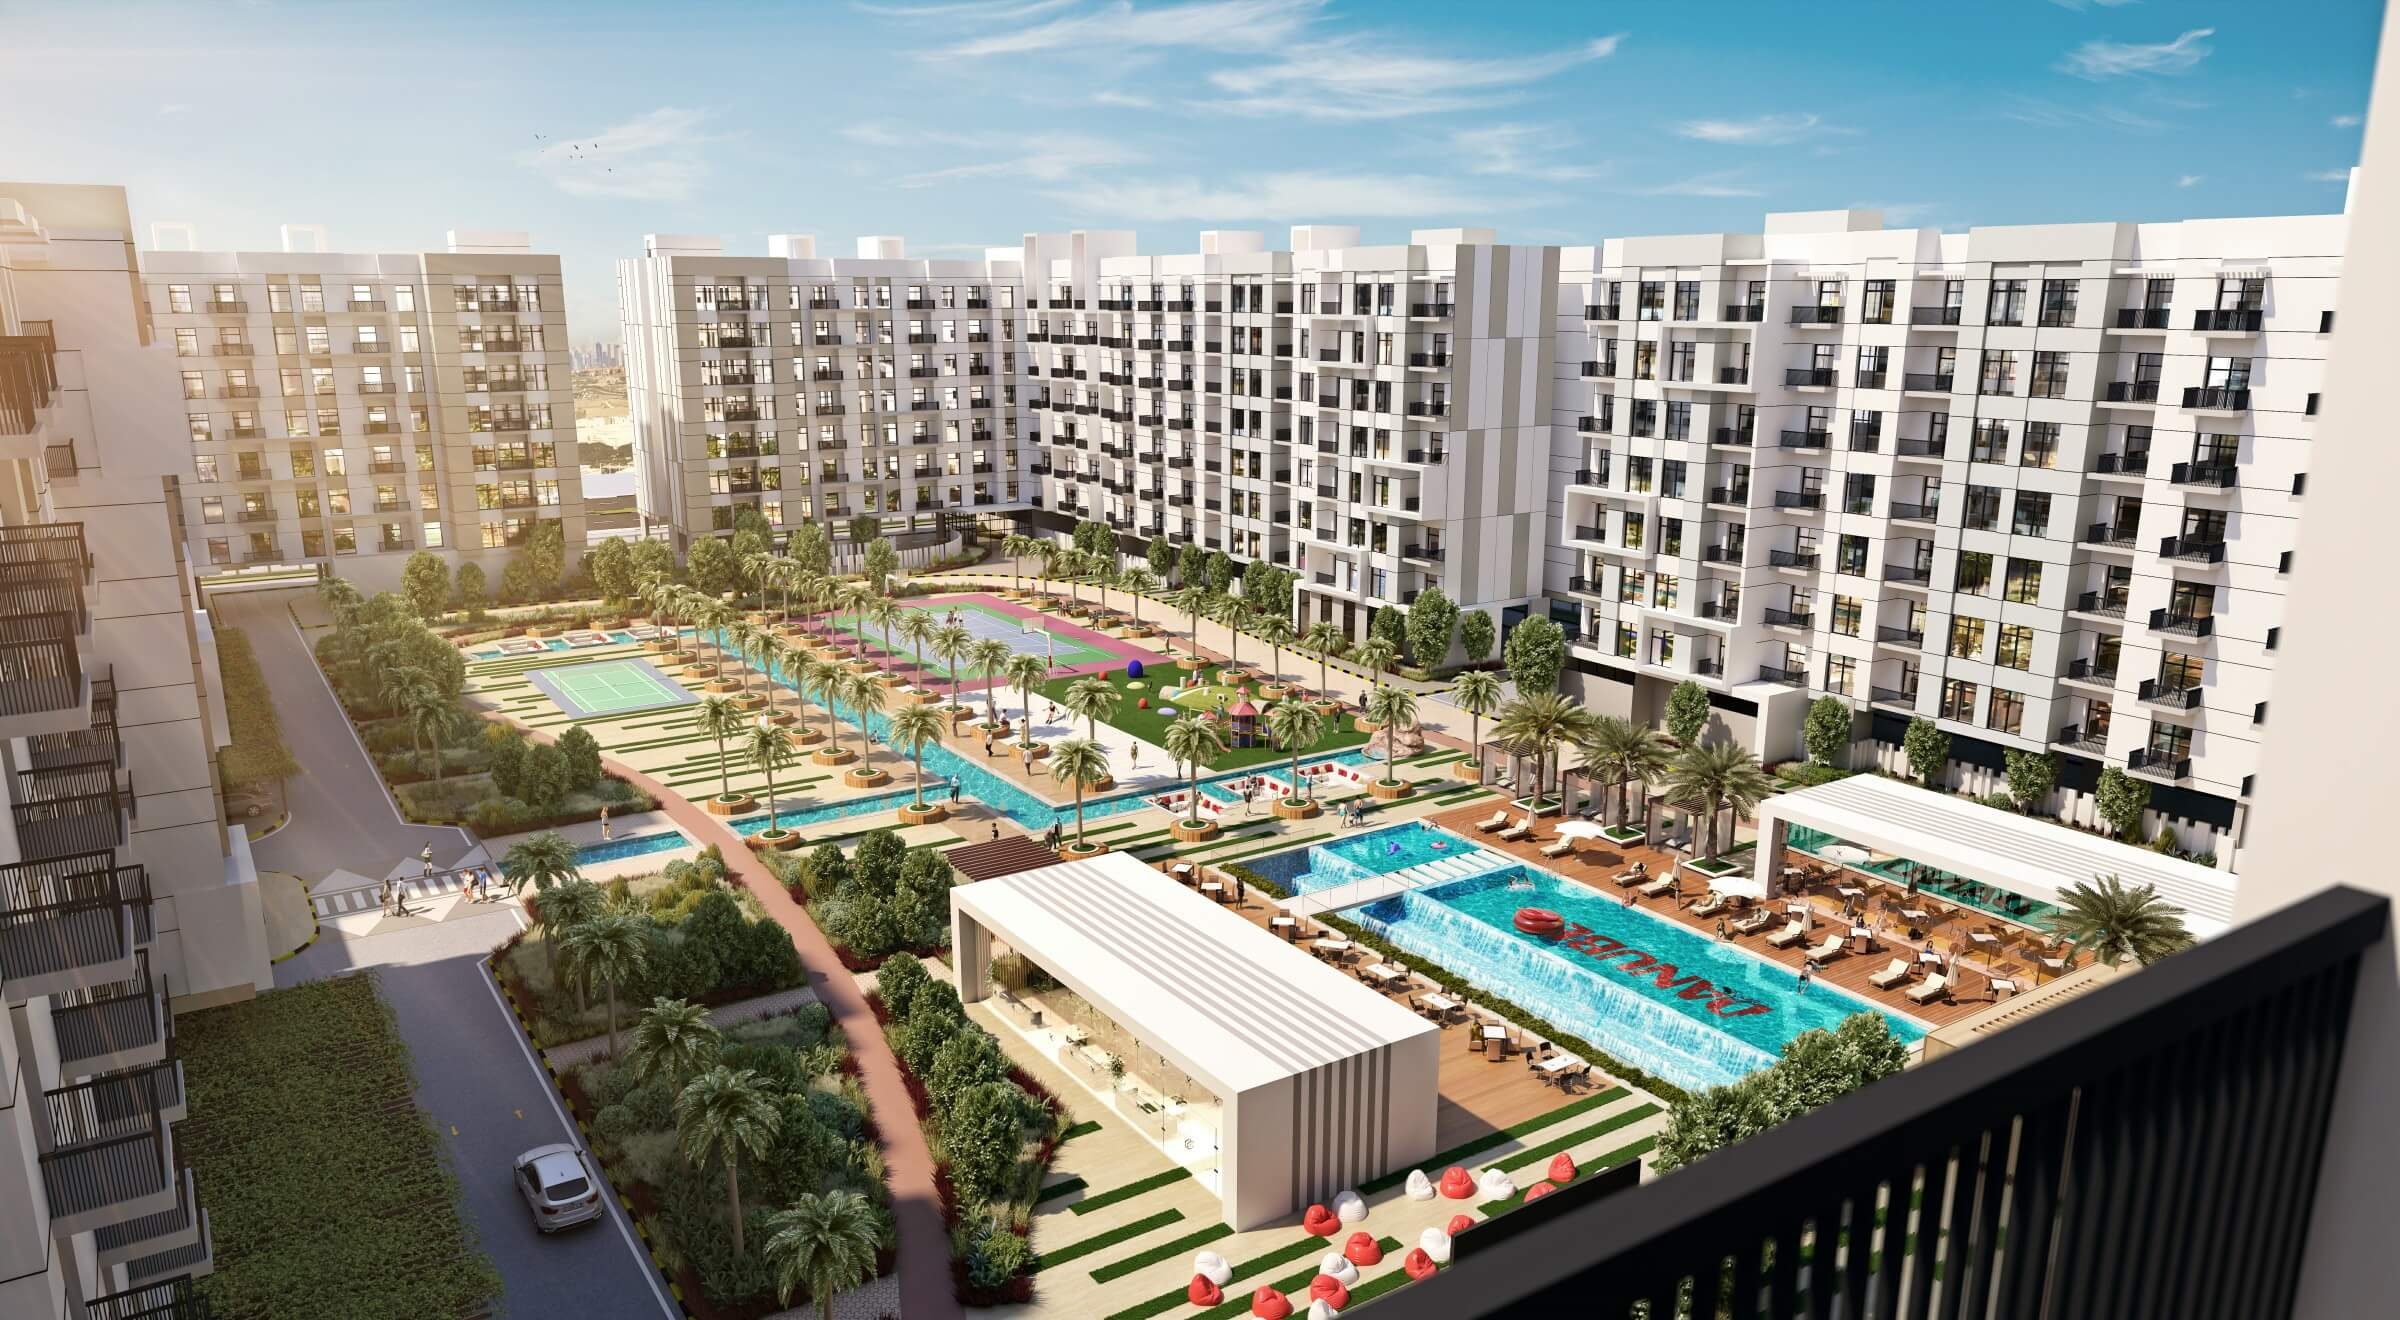 danube lawnz amenities features12